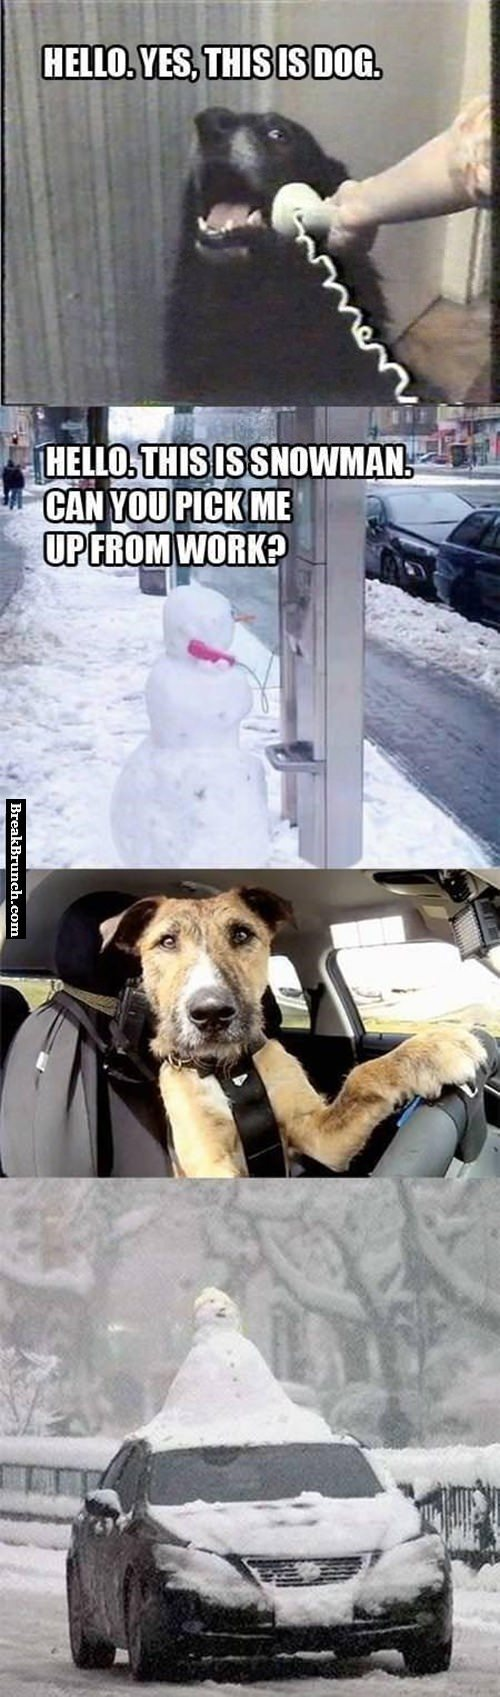 dog-is-that-you-snowman-pick-from-work